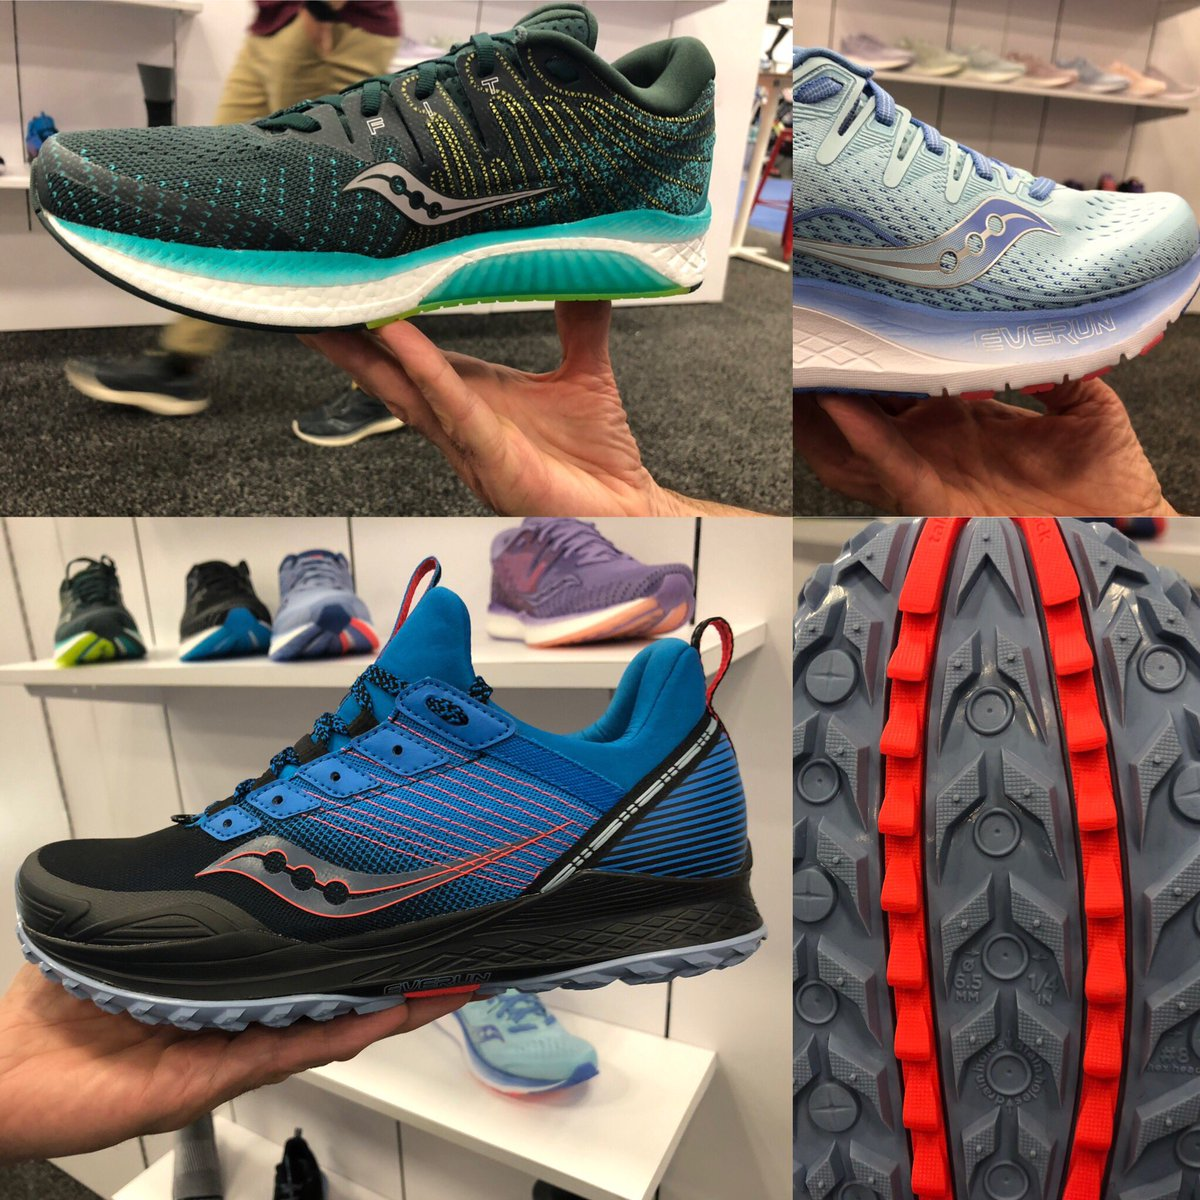 d4c43fbc436 Full previews to follow! Direct Link to article with all the videos   https   www.roadtrailrun.com 2018 11 the-running-eve  …pic.twitter.com srAEFjFf70